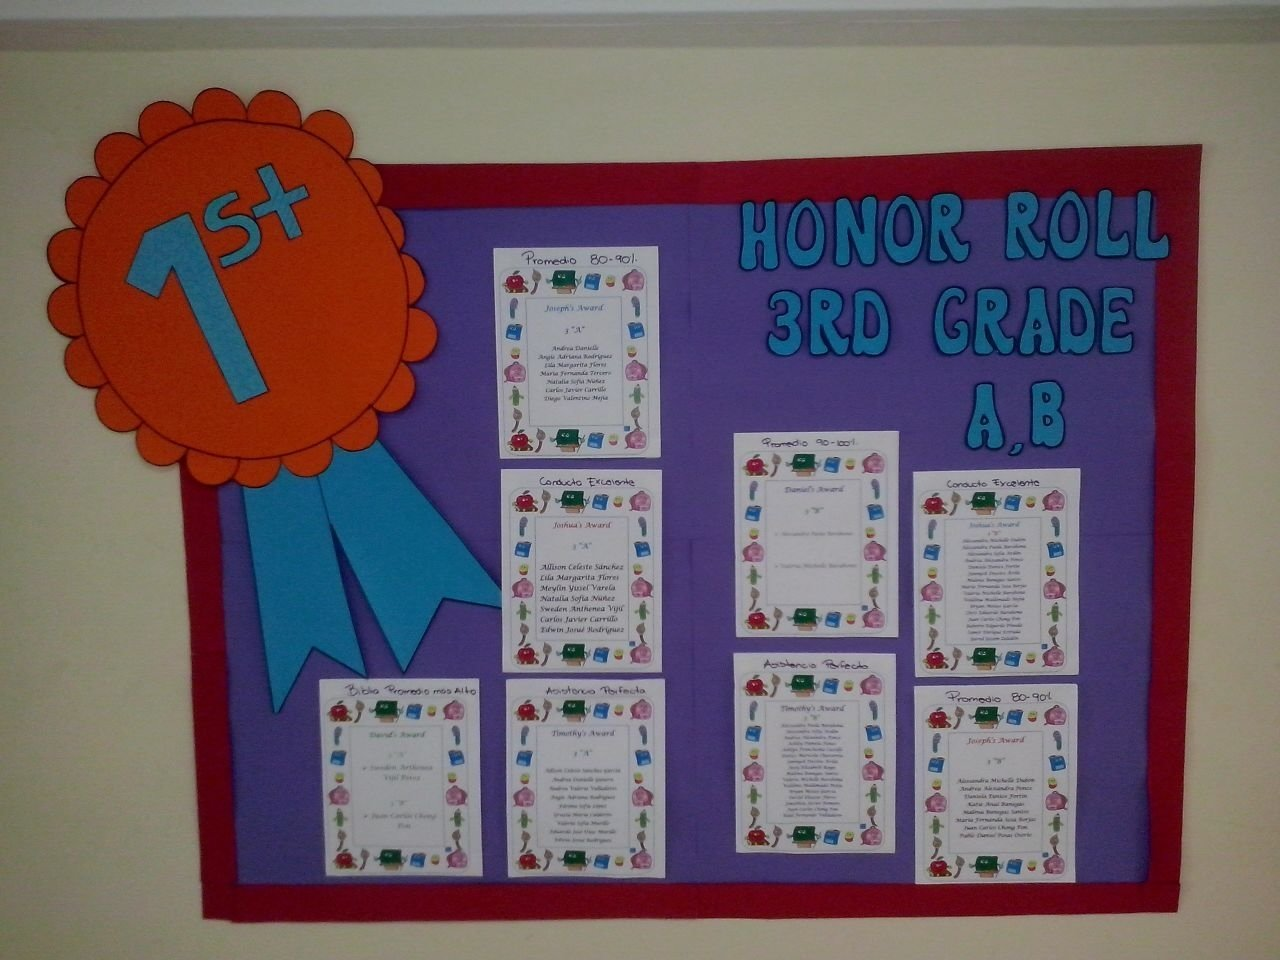 honor roll bulletin board ideas | school | pinterest | honor roll